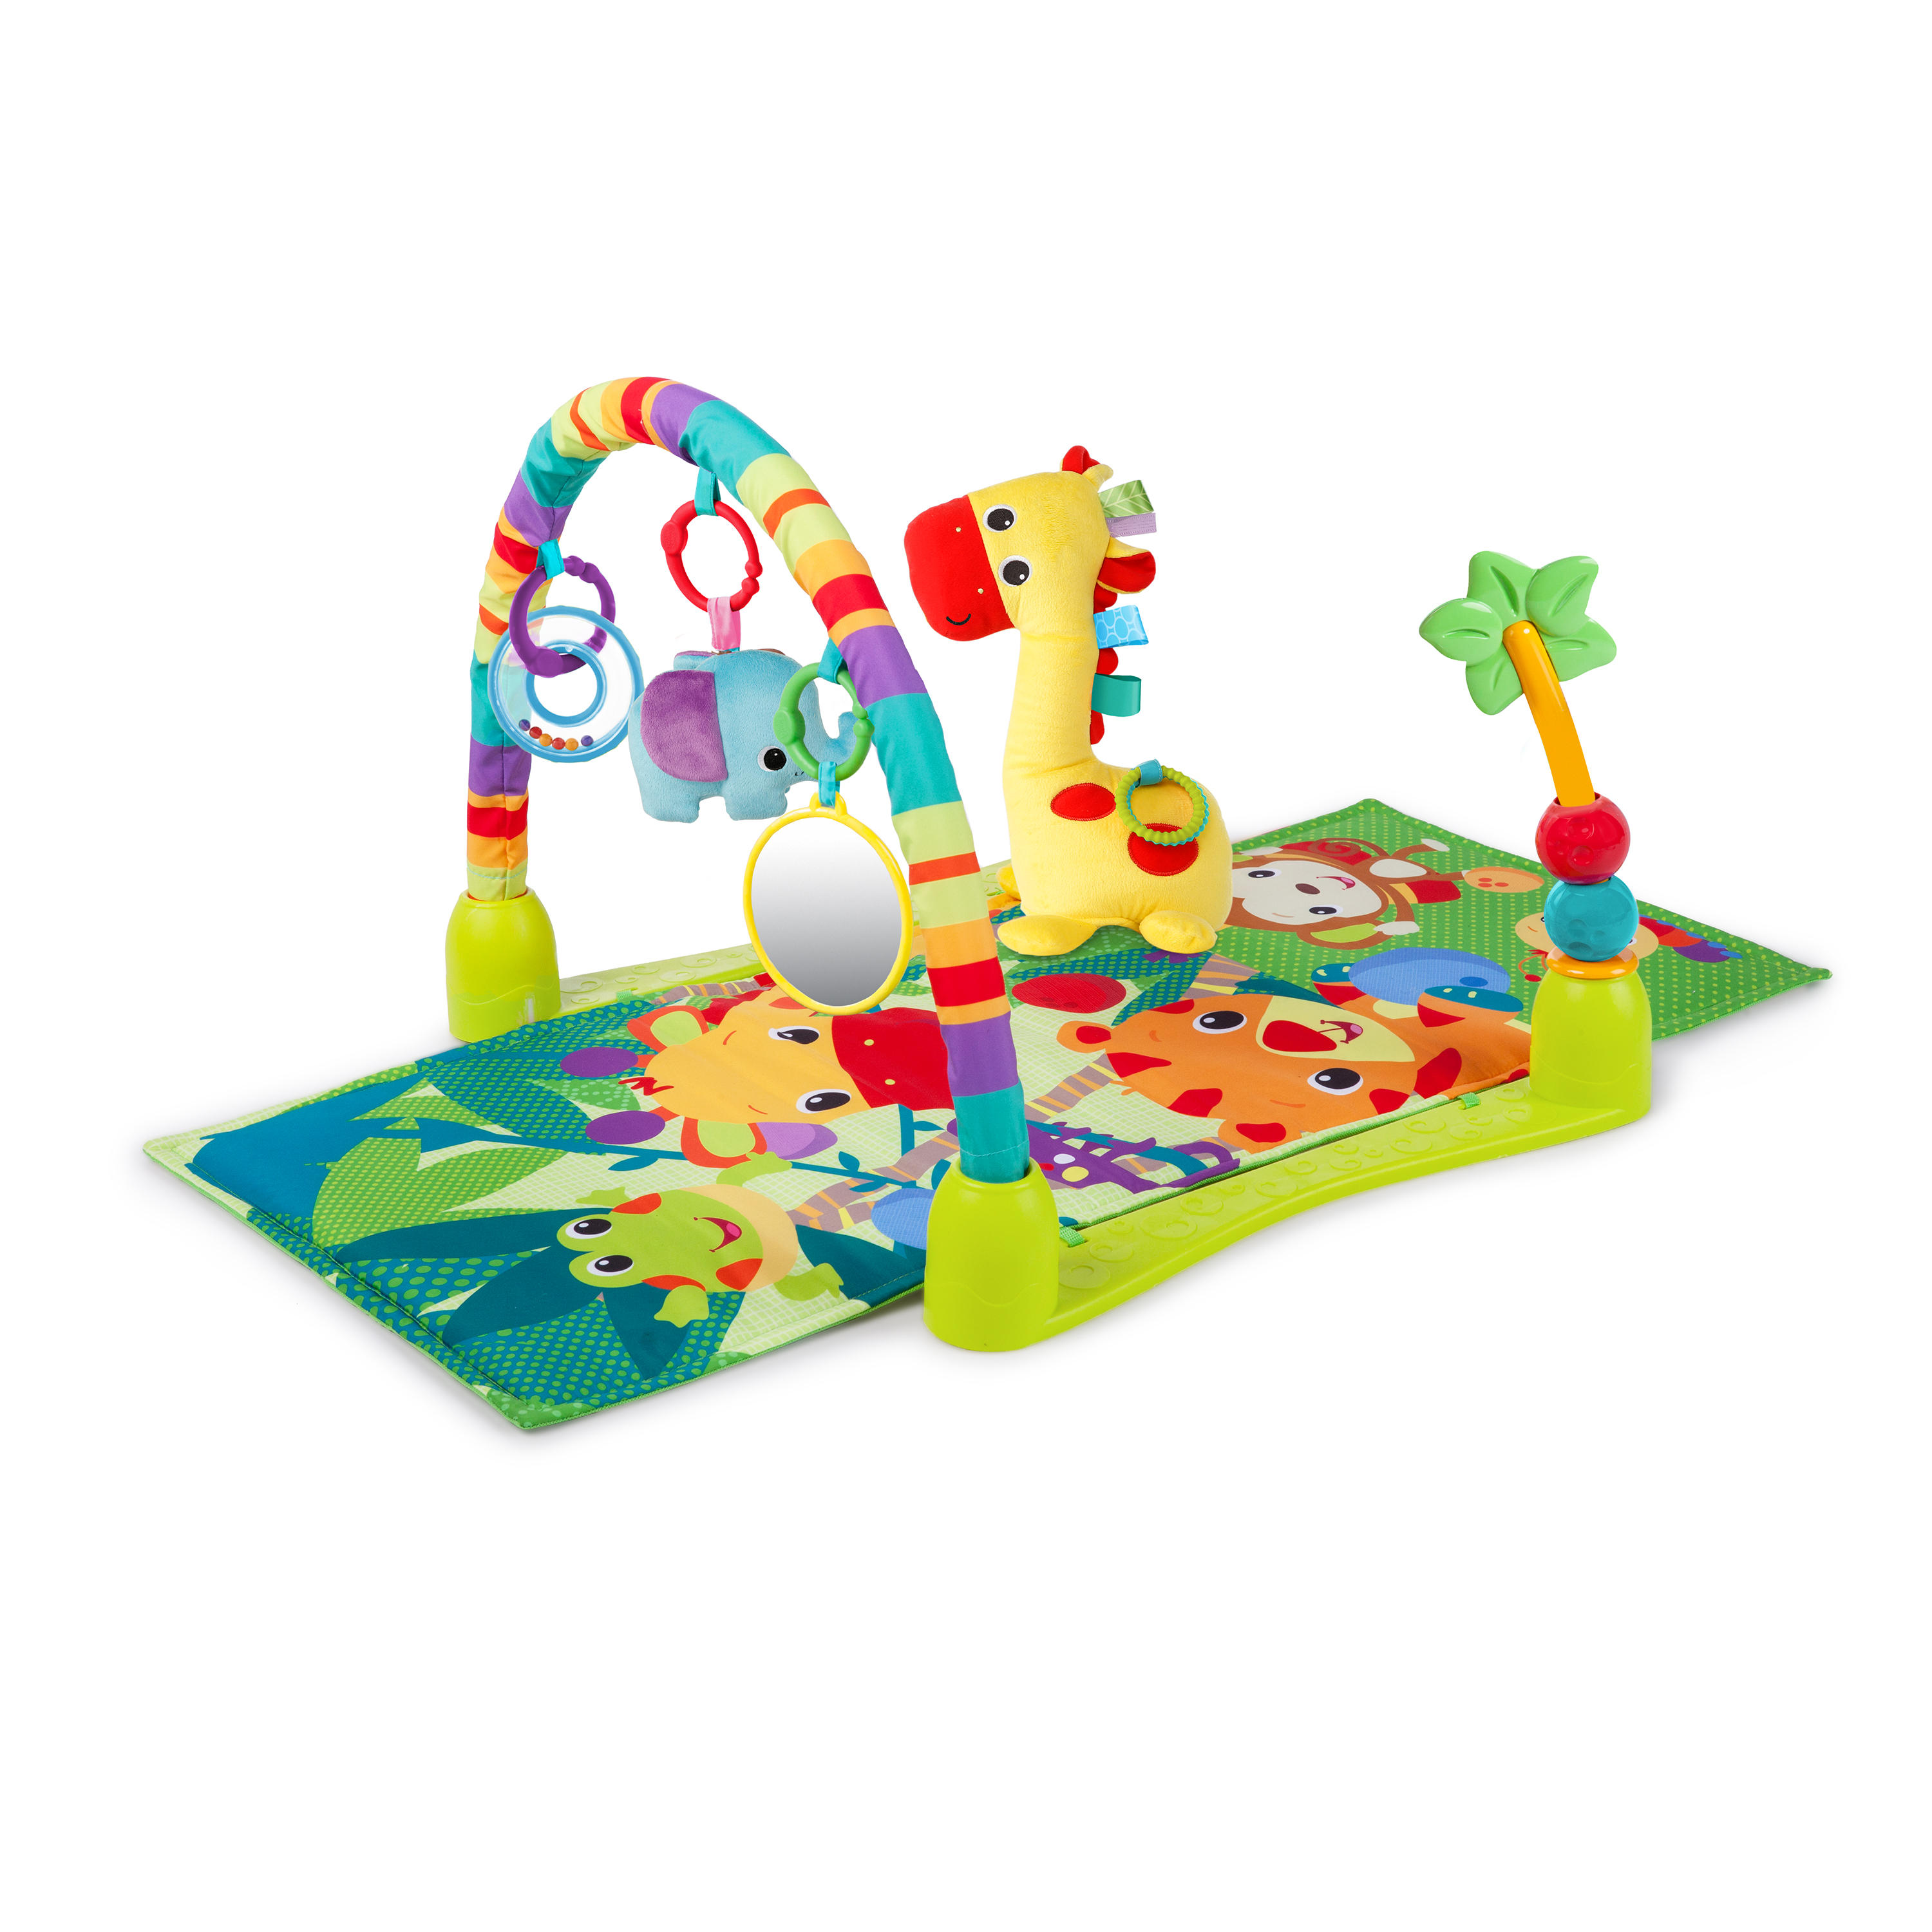 Bright Starts 4-in-1 Jungle Discovery Activity Gym